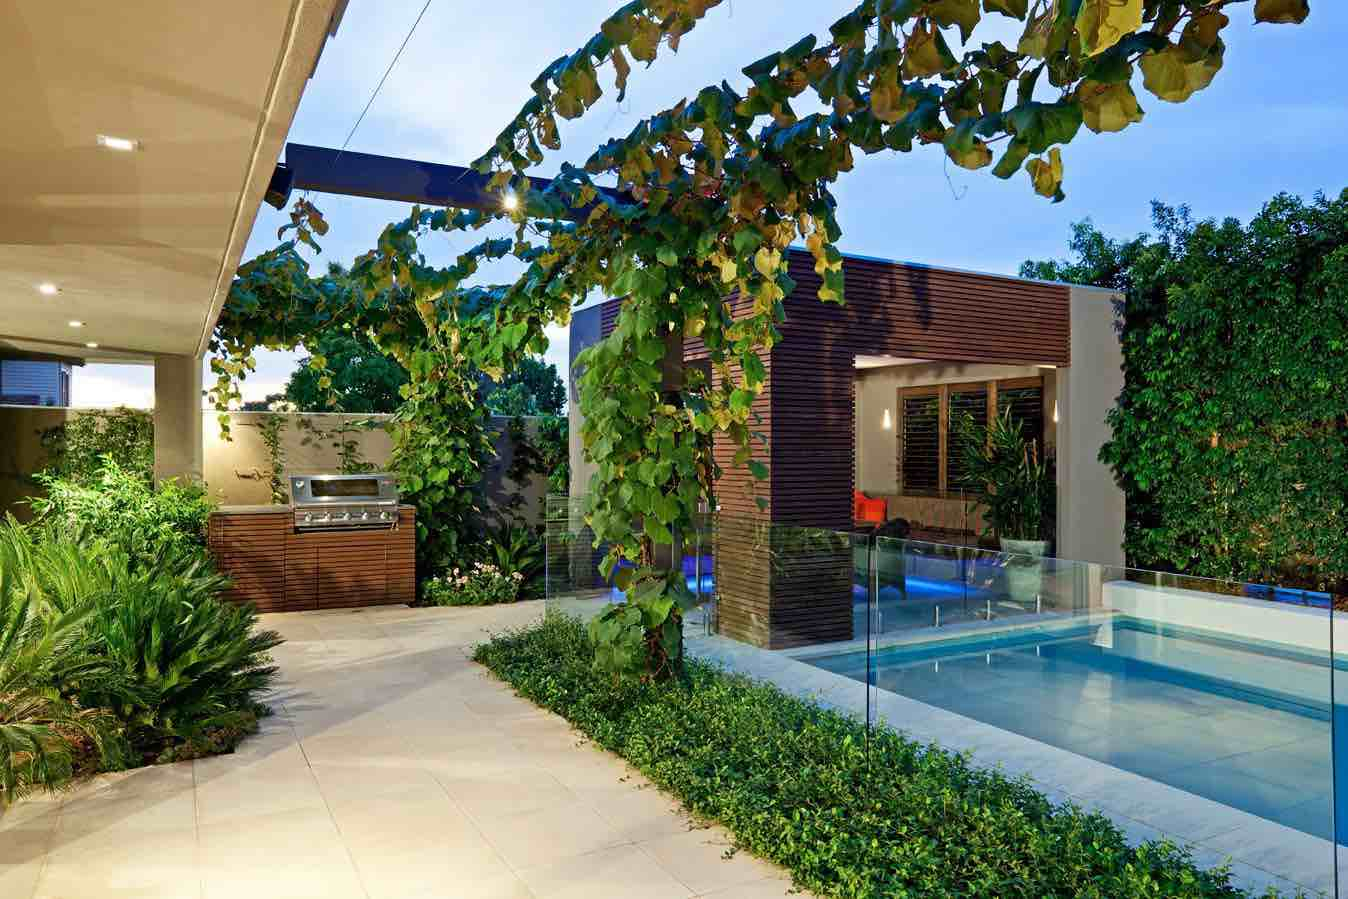 small backyard home design idea - Narrow Backyard Design Ideas